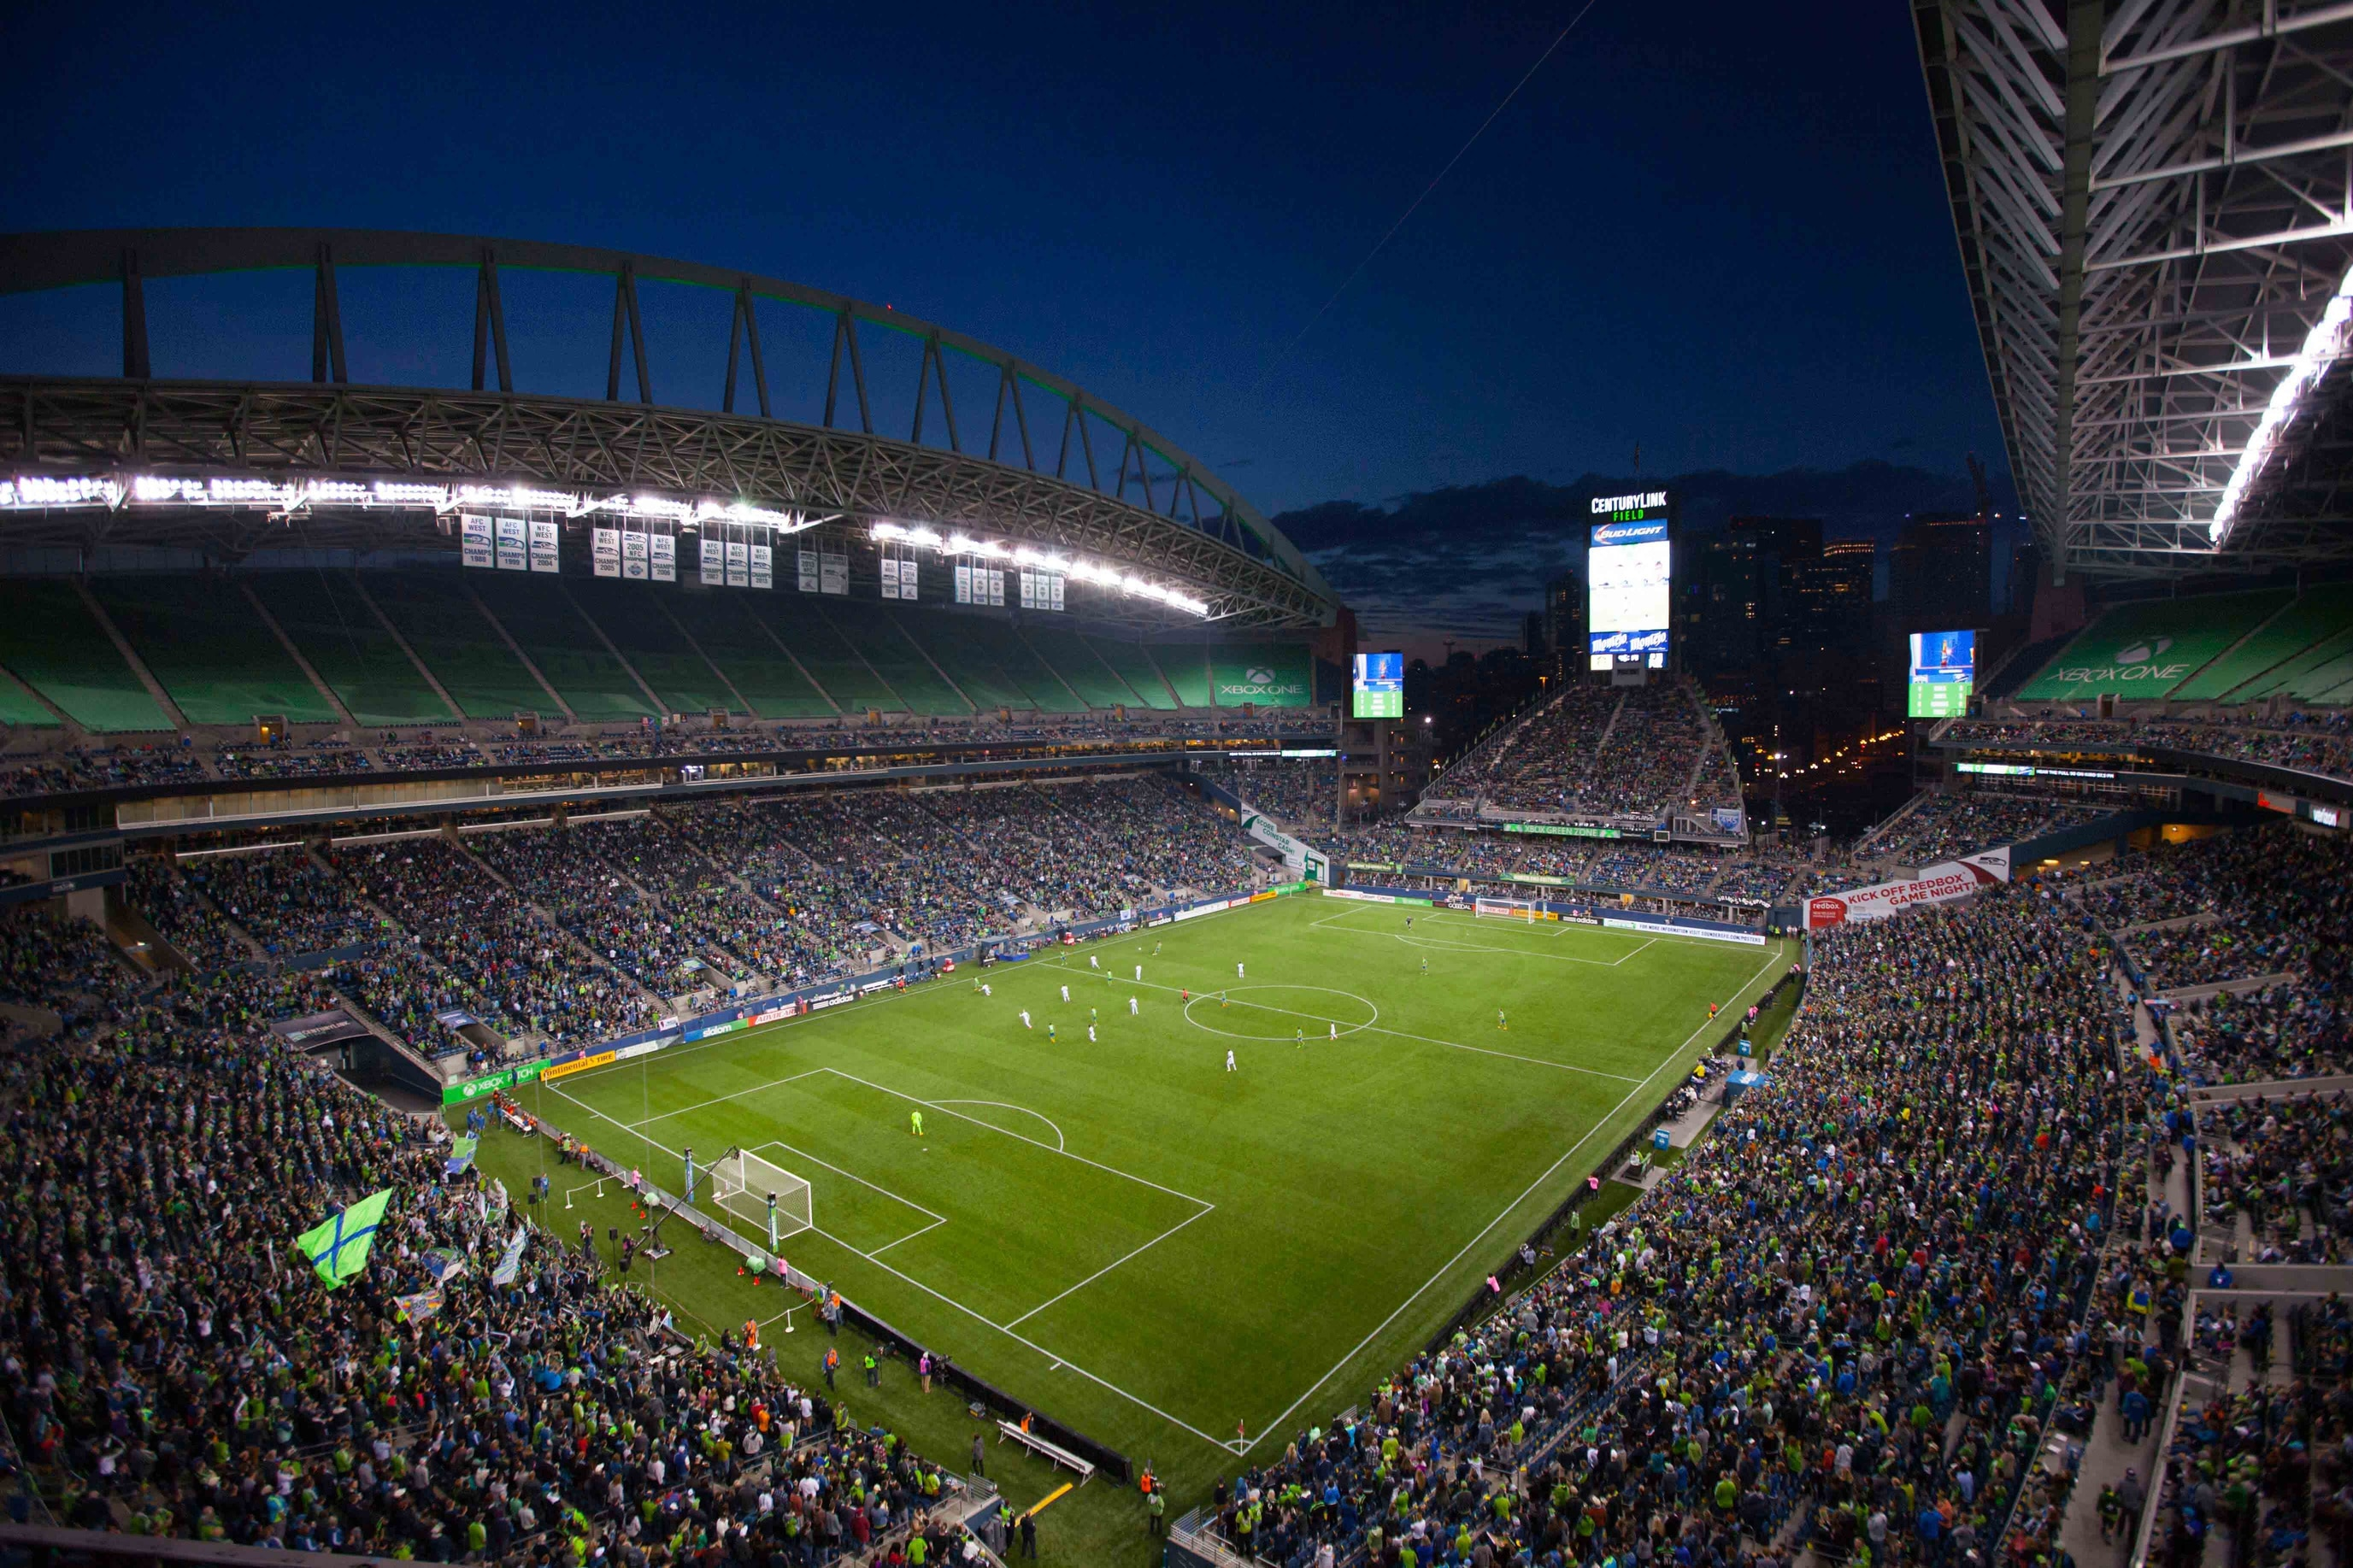 CenturyLink Field to be used as field hospital during COVID-10 pandemic